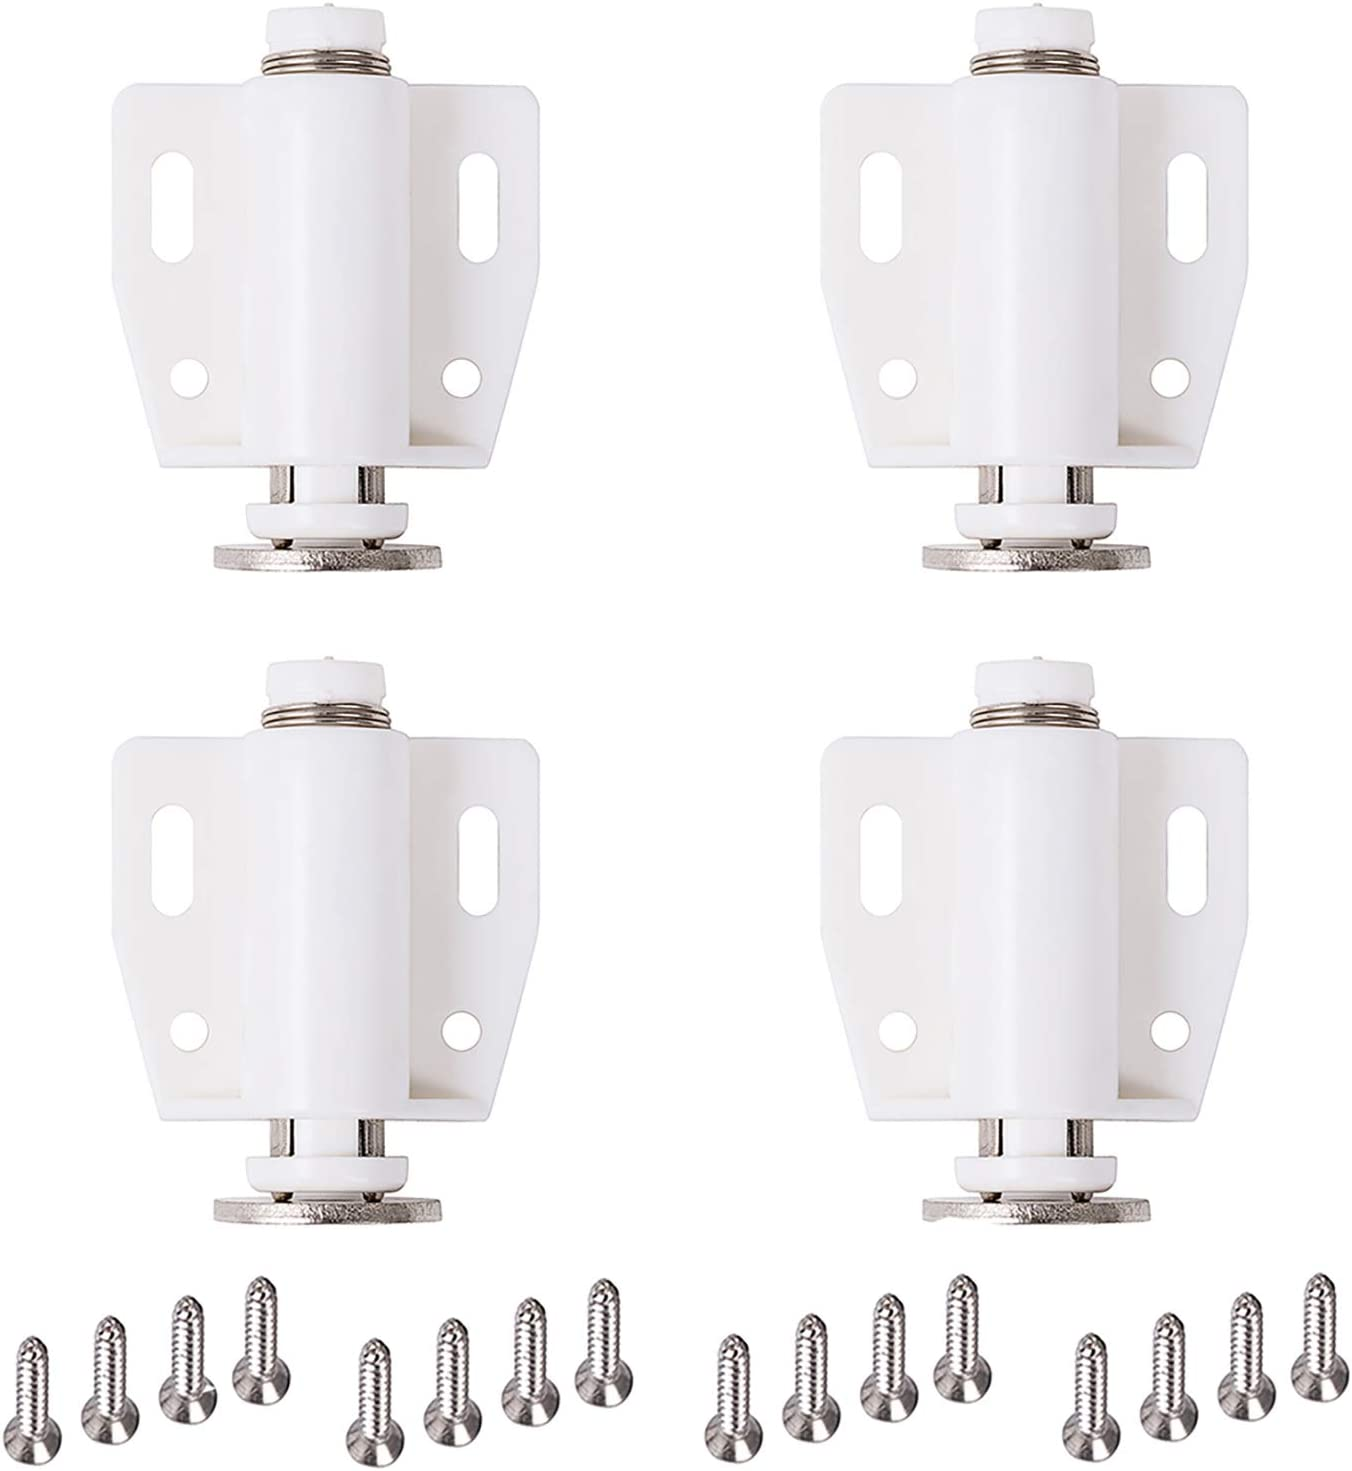 DonYoung Magnetic Some reservation Touch Latch 4 Pack Push Open Lat Cabinet Door Max 51% OFF